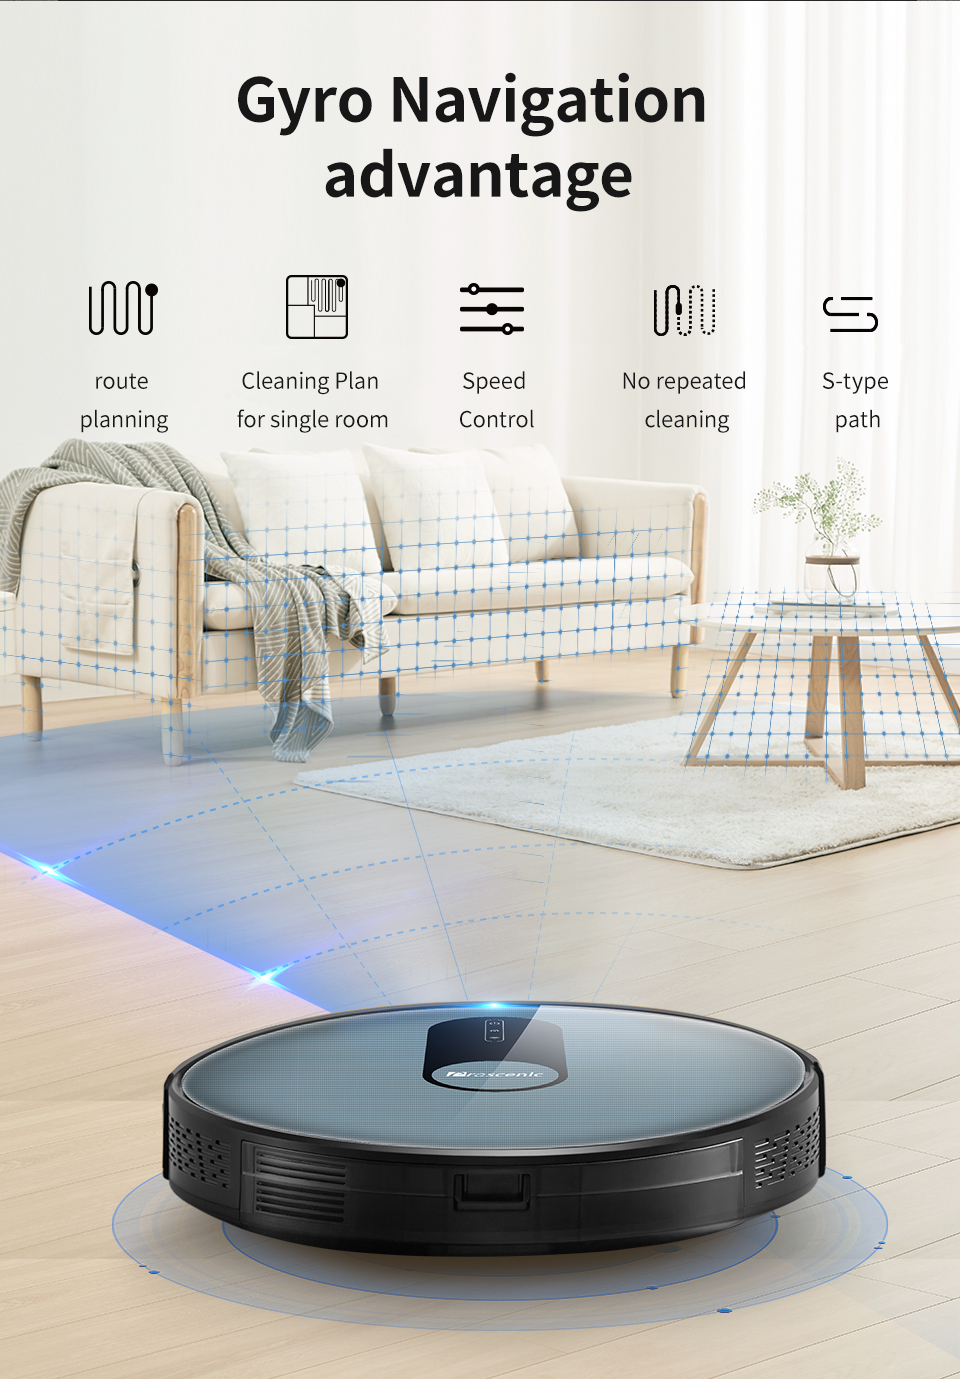 H20635fbd55e040e8852f05980d7a140bK Proscenic 820P Robot Vacuum Cleaner Smart Planned 1800Pa Suction with wet cleaning for Home Carpet Cleaner Washing Smart Robot